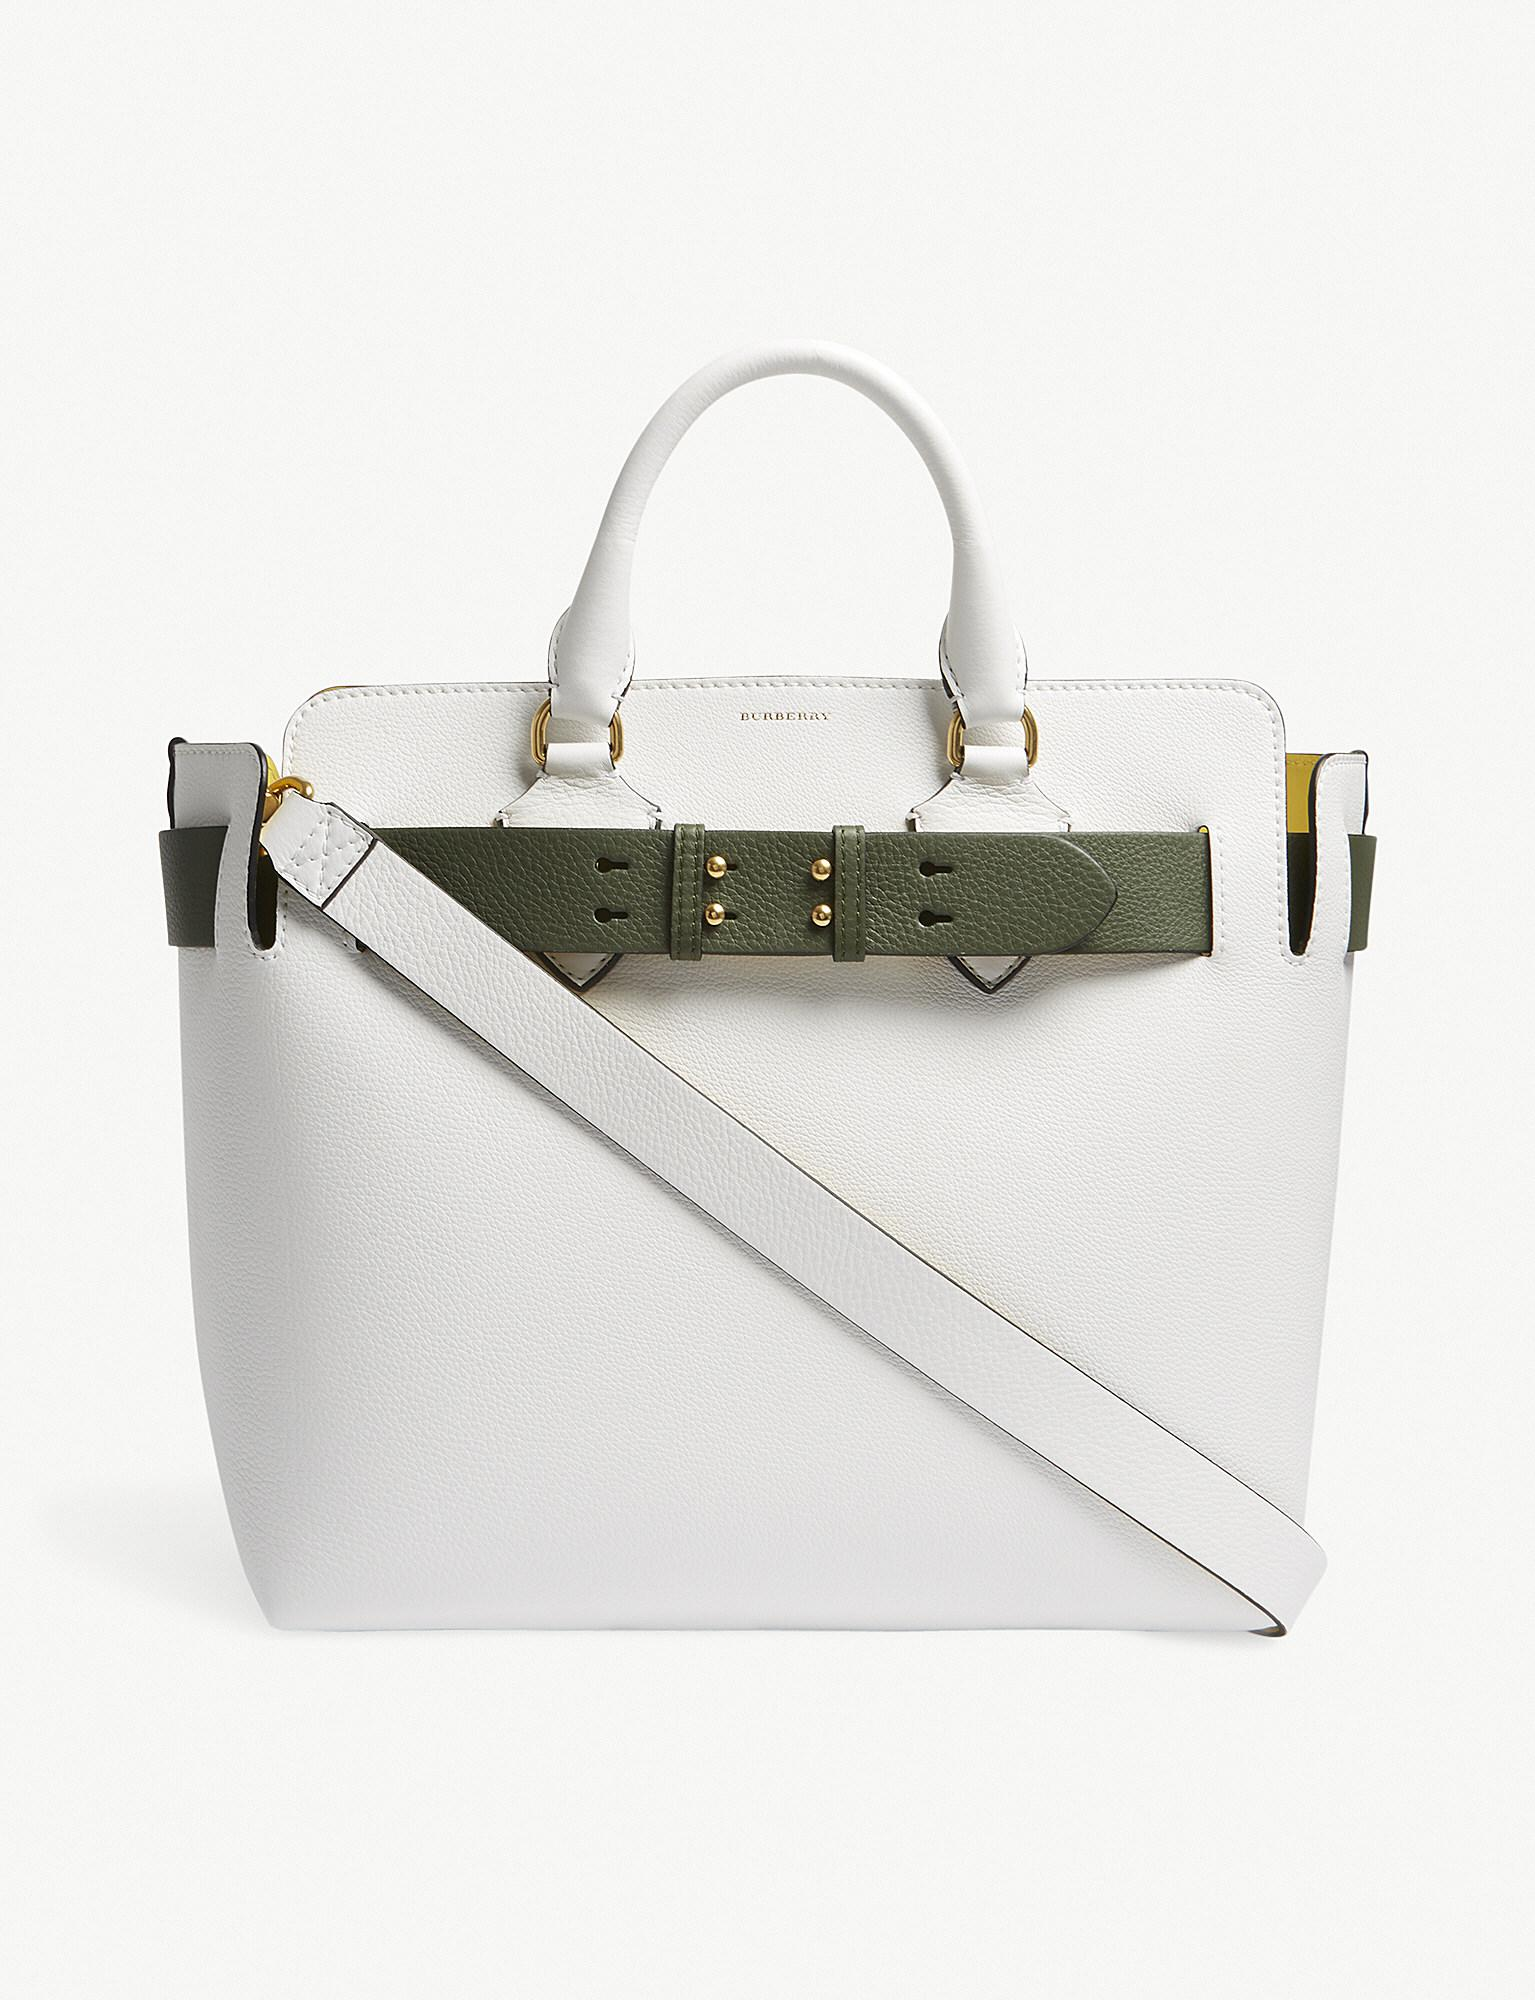 69225ff0cf11 Lyst - Burberry Belt Medium Leather Tote Bag in White